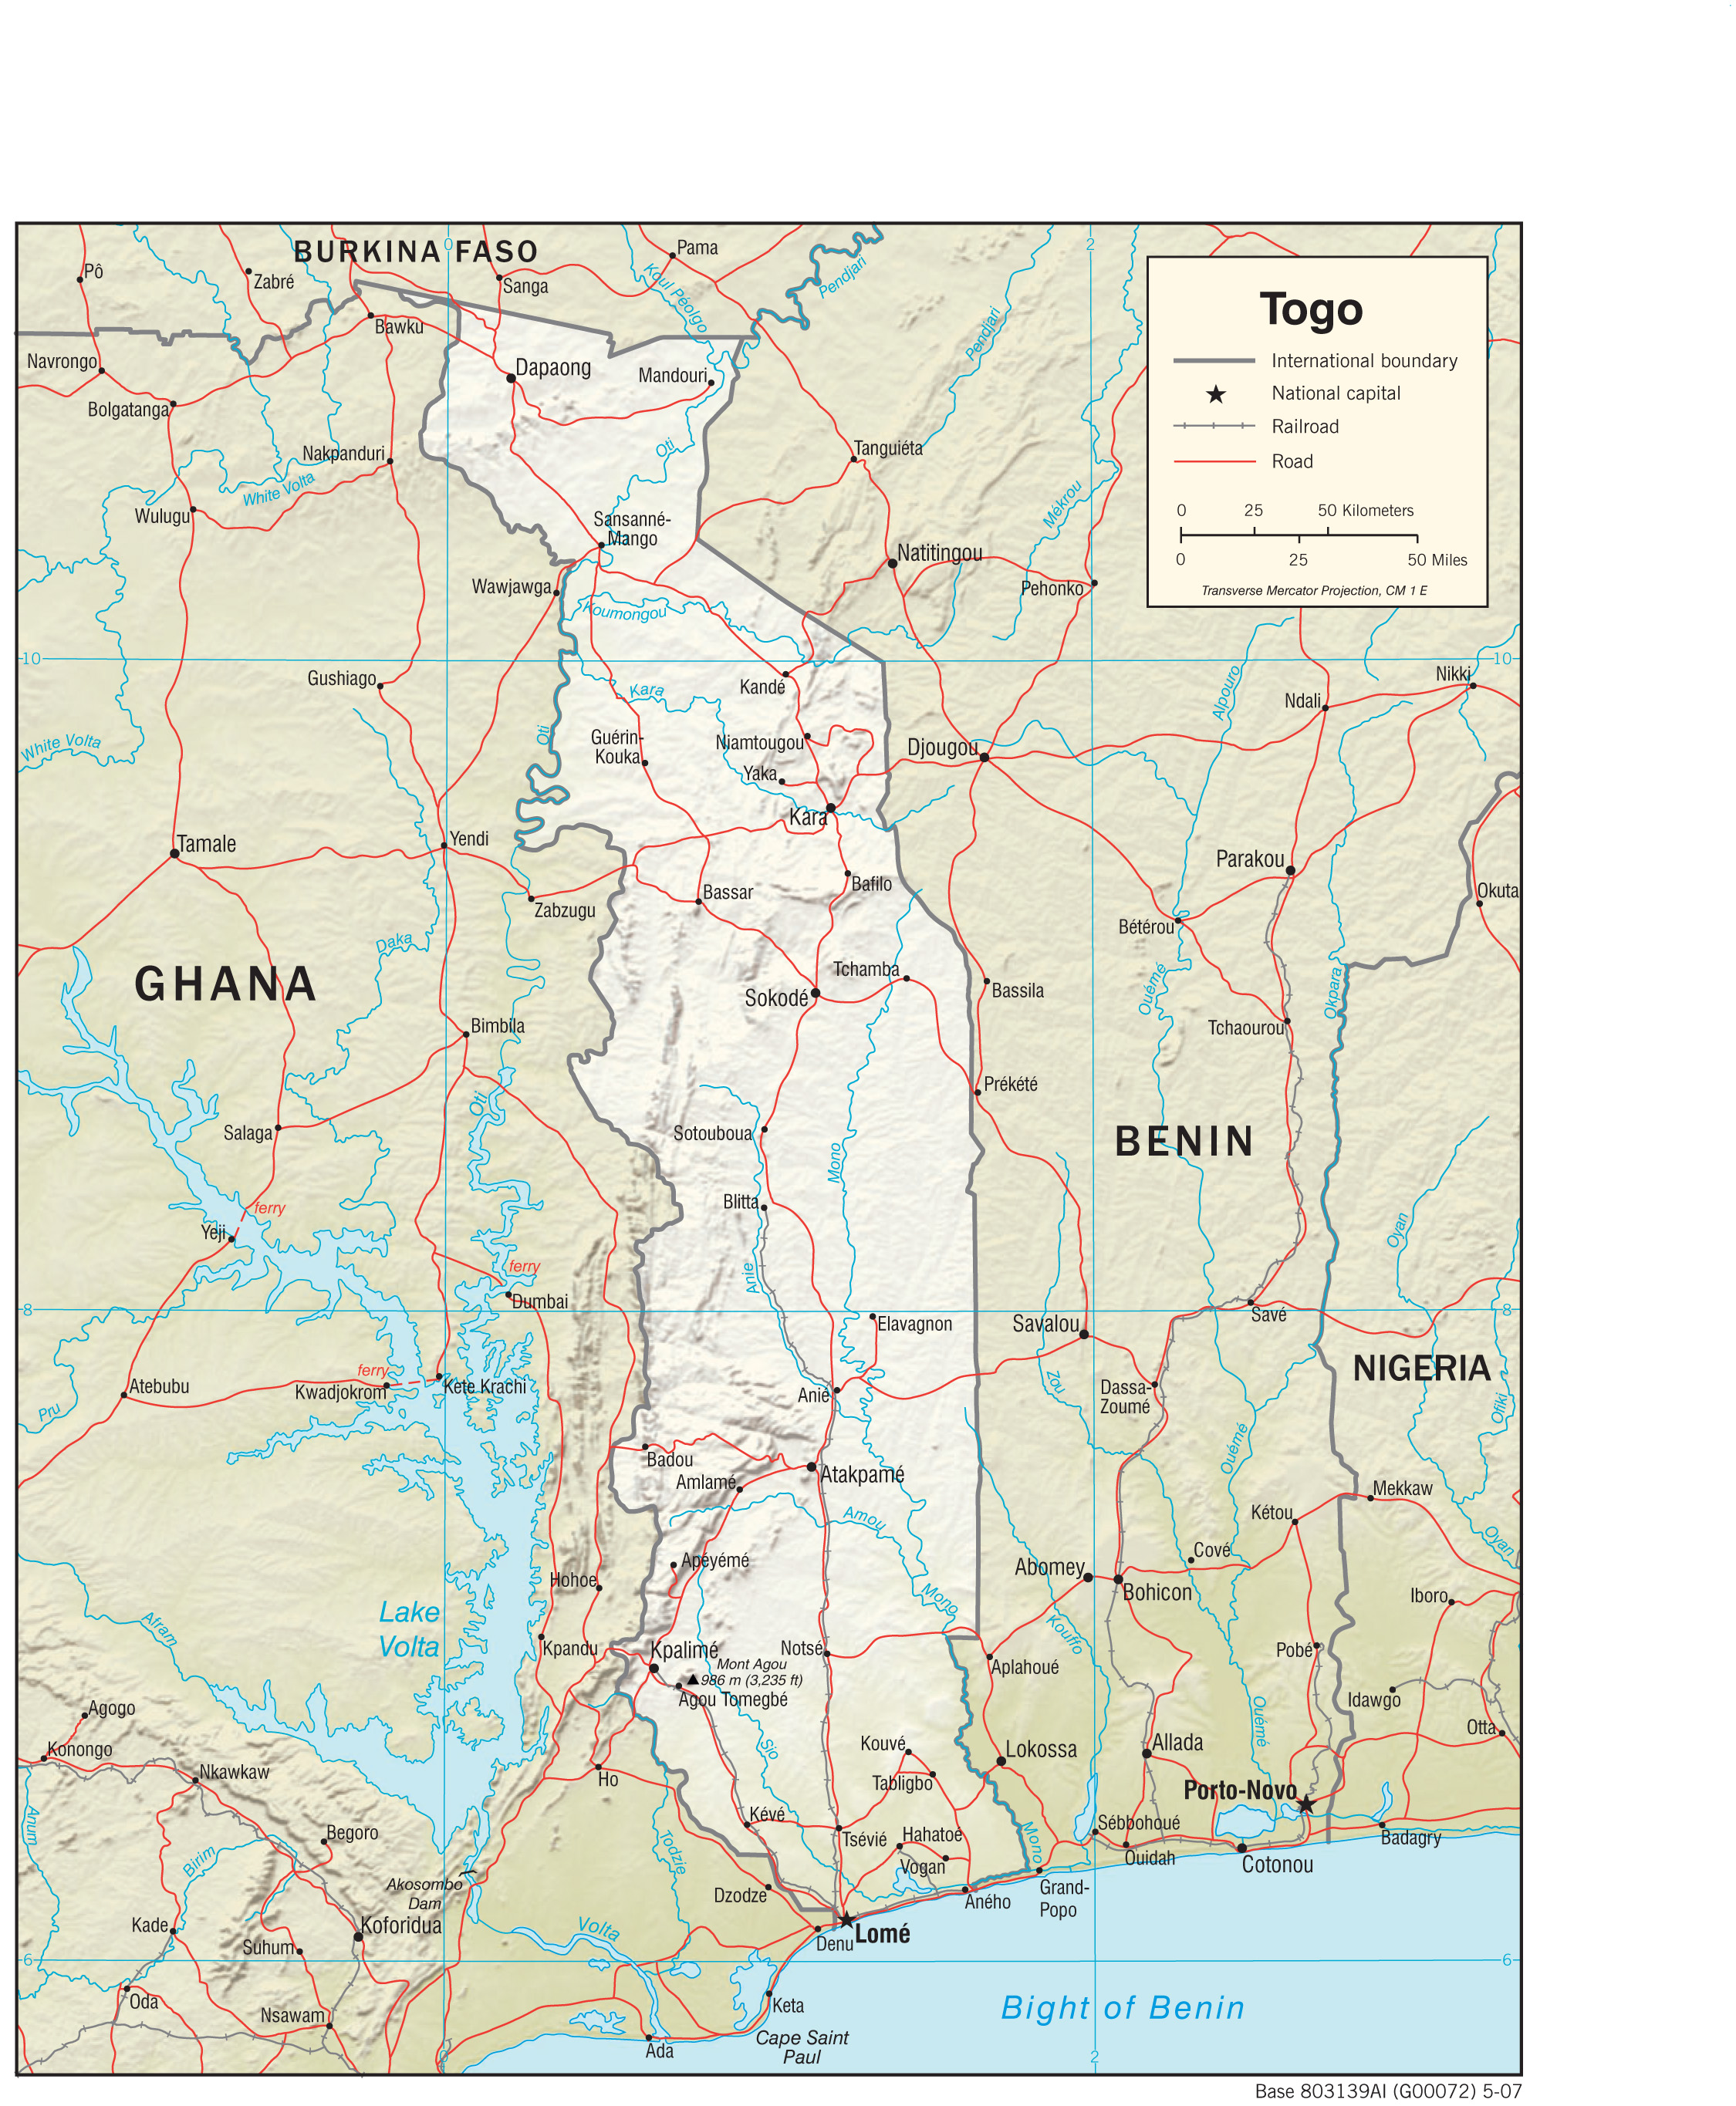 Togo maps perry castaeda map collection ut library online togo physiography 2007 17mb and pdf format 394k gumiabroncs Image collections